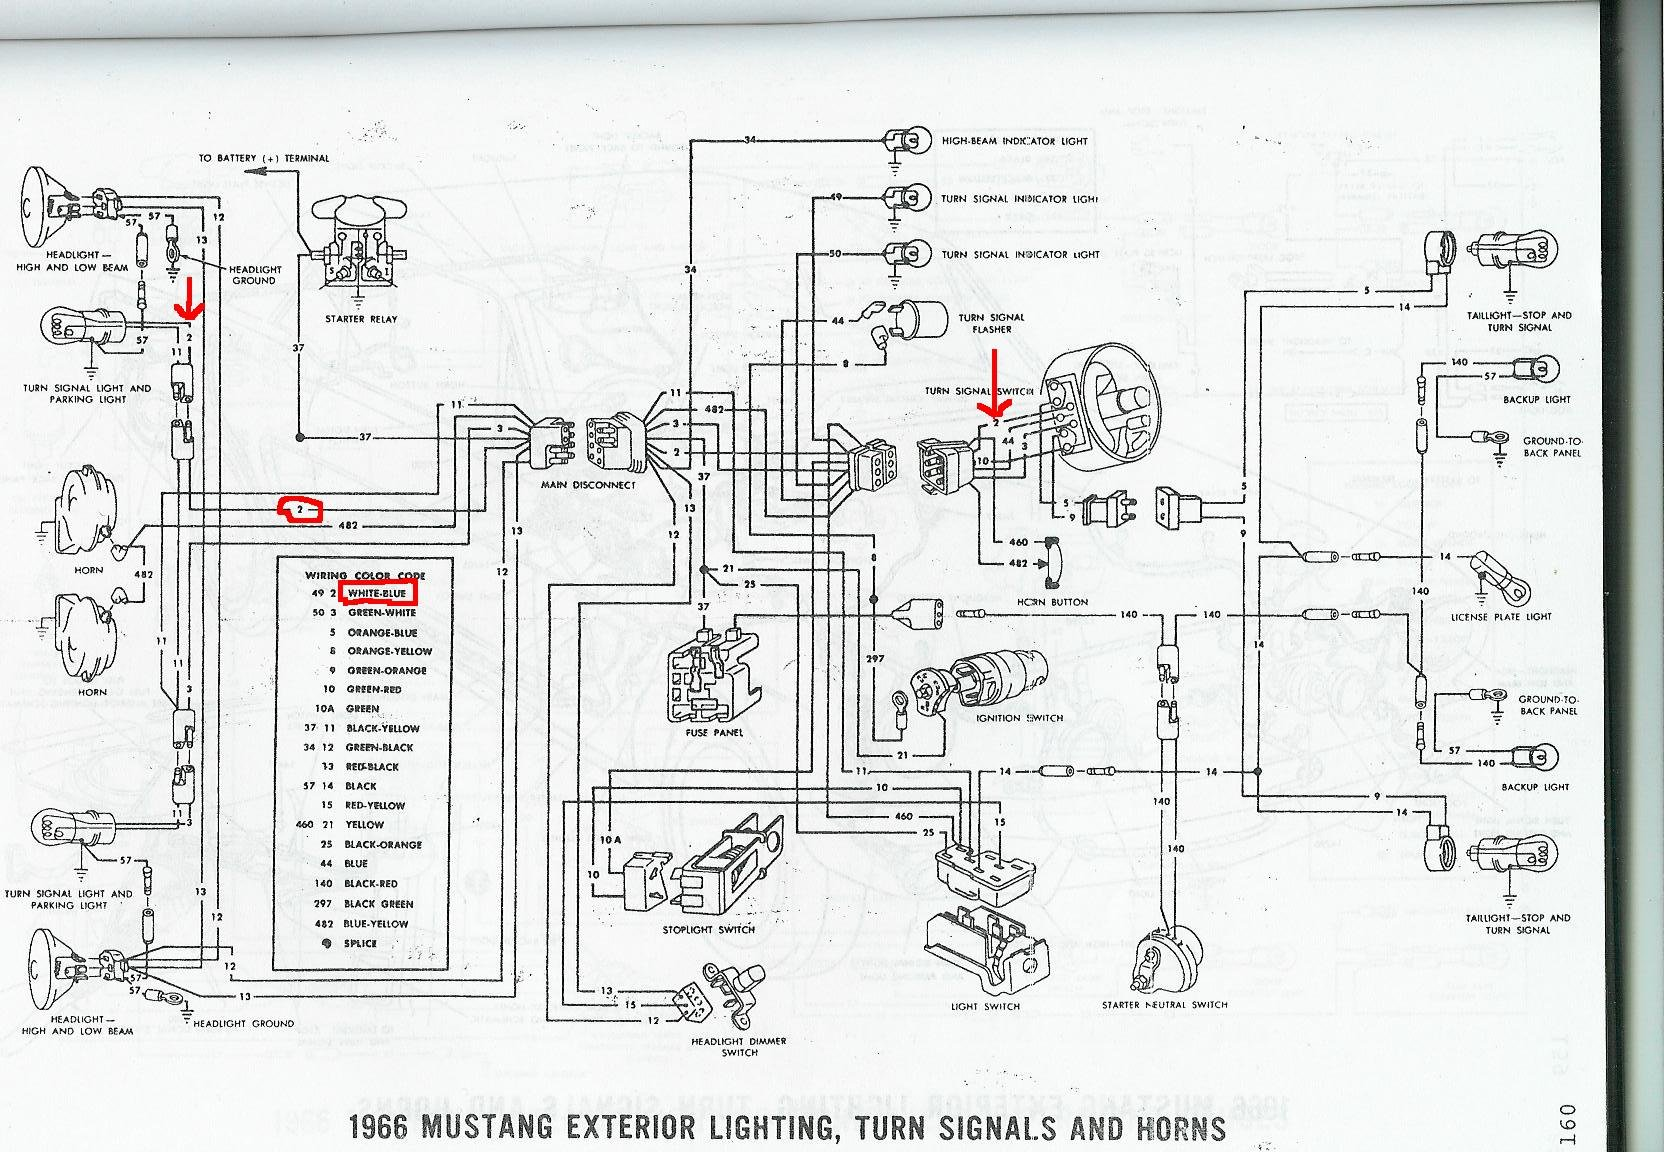 1966 mustang horn wiring diagram moreover 1967 mustang wiring 1967 mustang horn wiring diagram 1966 ford mustang tail lights wiring diagram basic wiring diagram u2022 rh rnetcomputer co